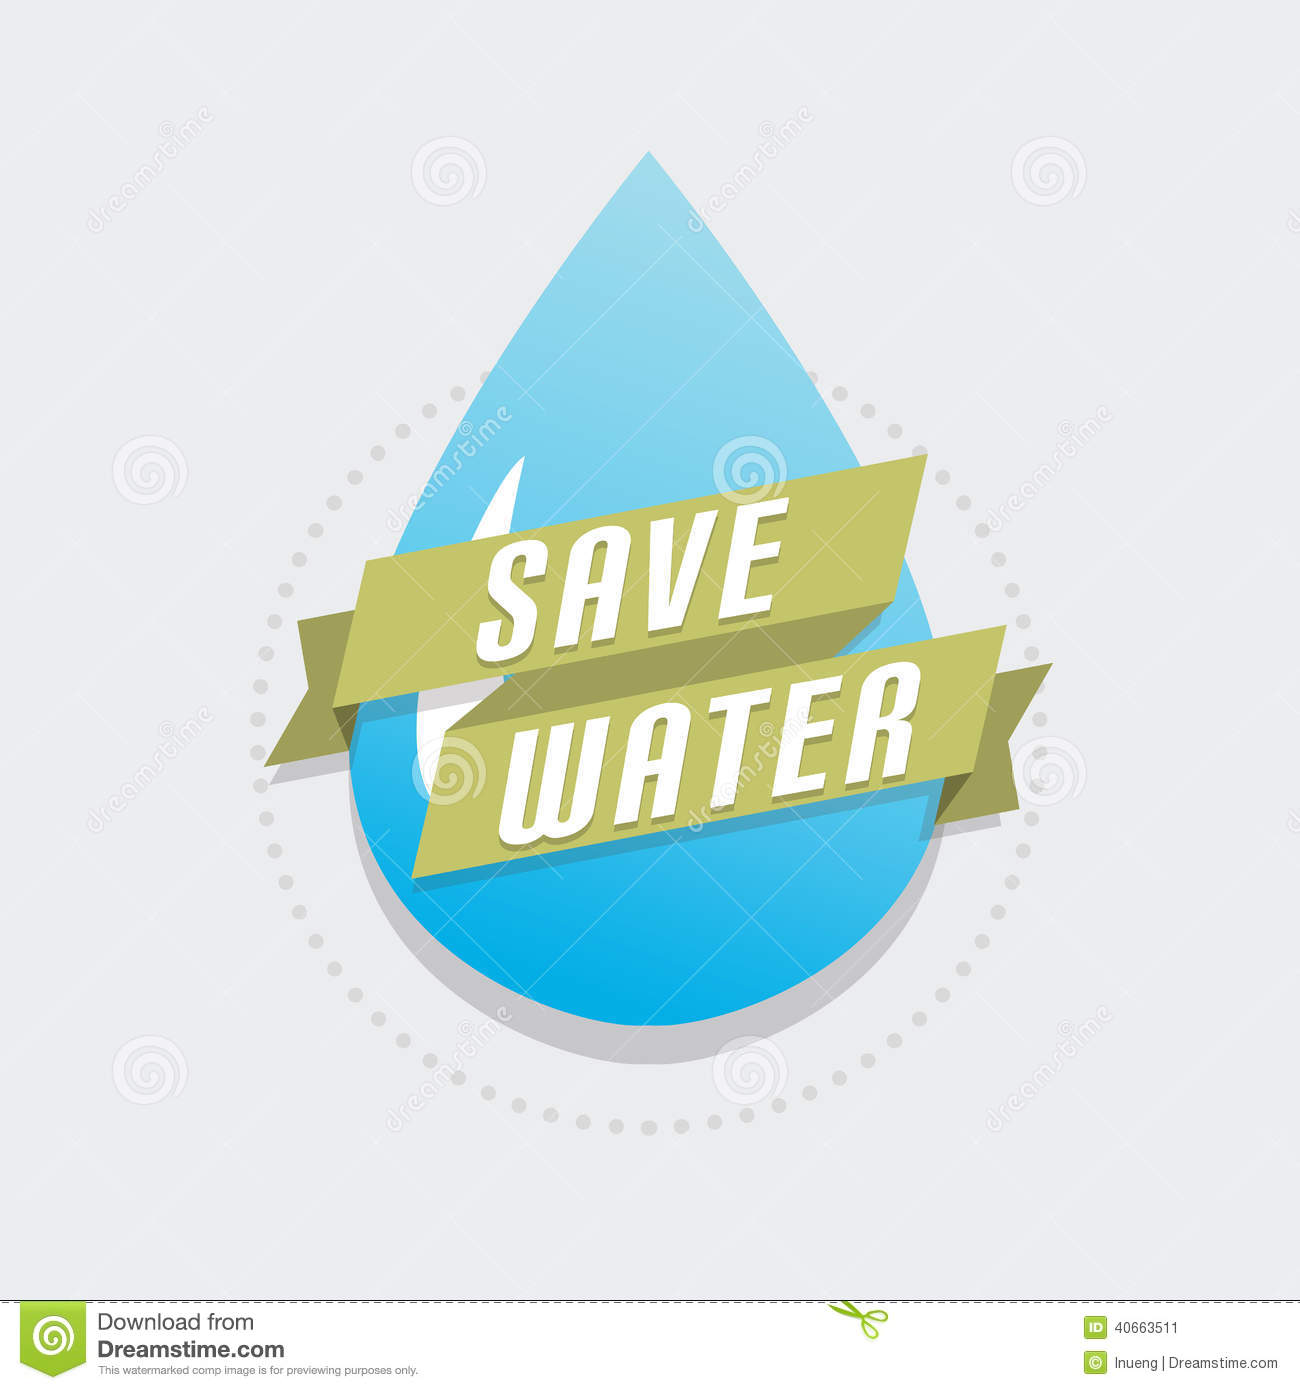 Save Water Stock Vector - Image: 40663511